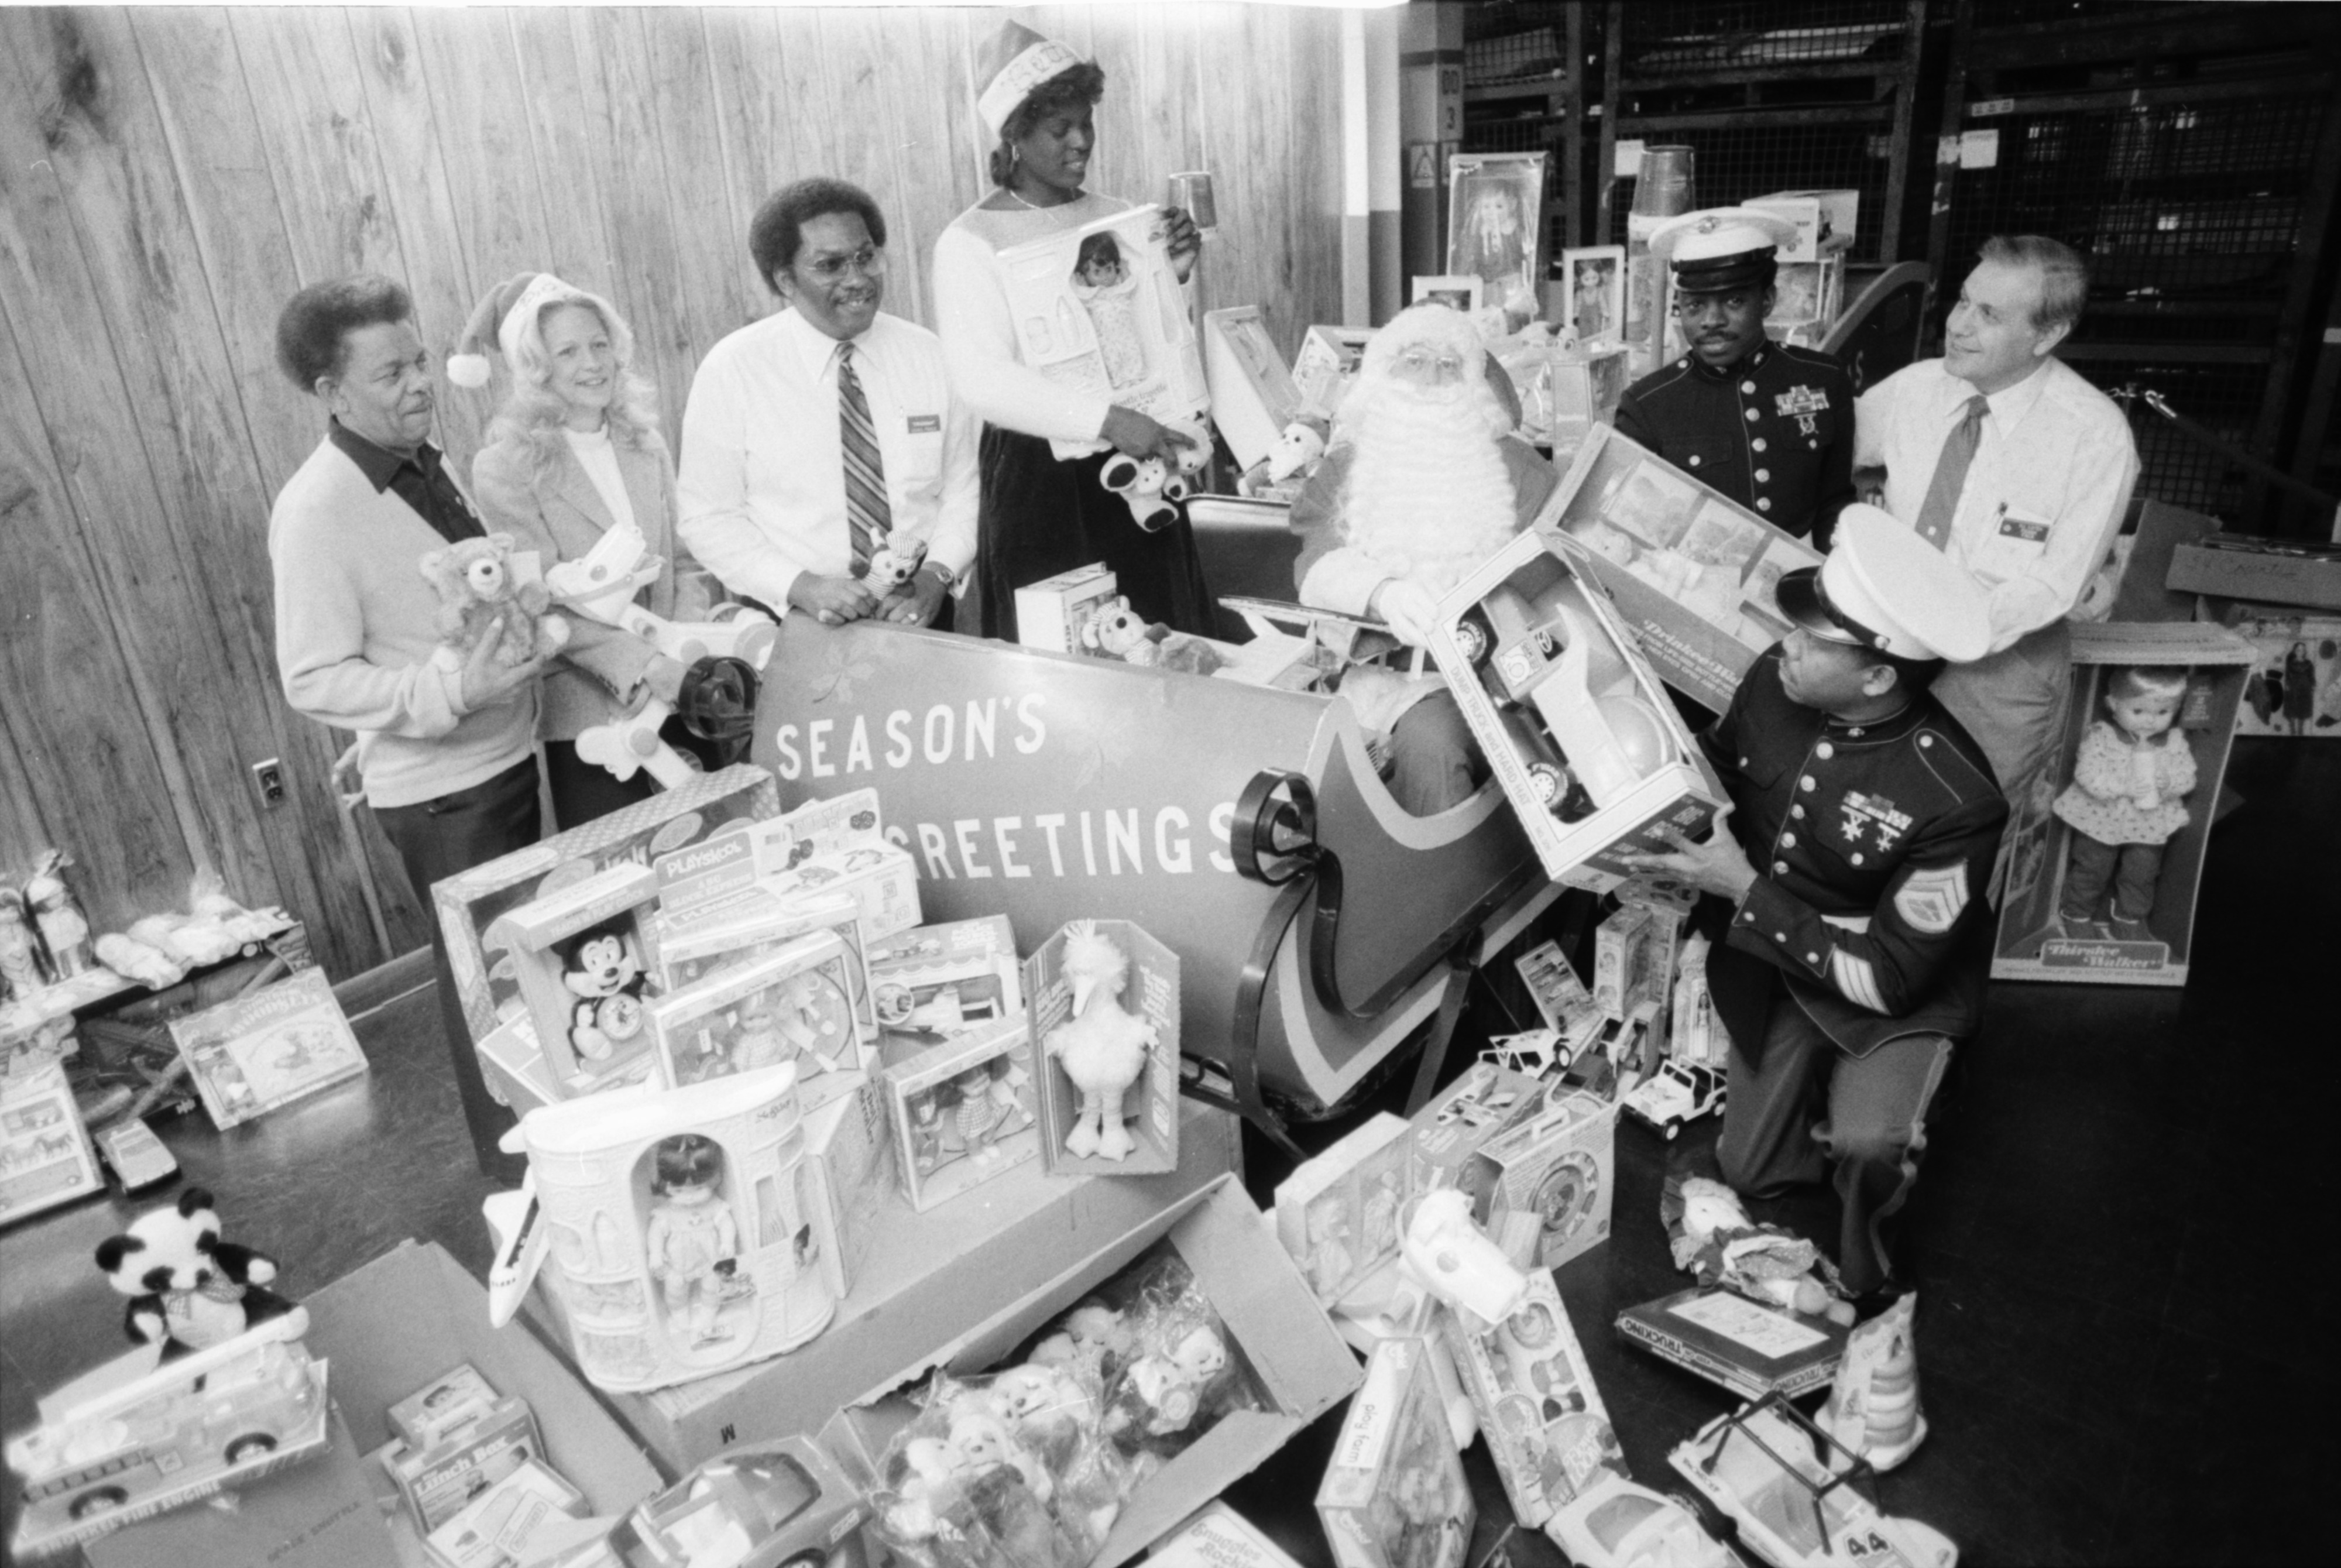 Toys for Tots program at the General Motors Assembly Plant at Willow Run, December 1982 image